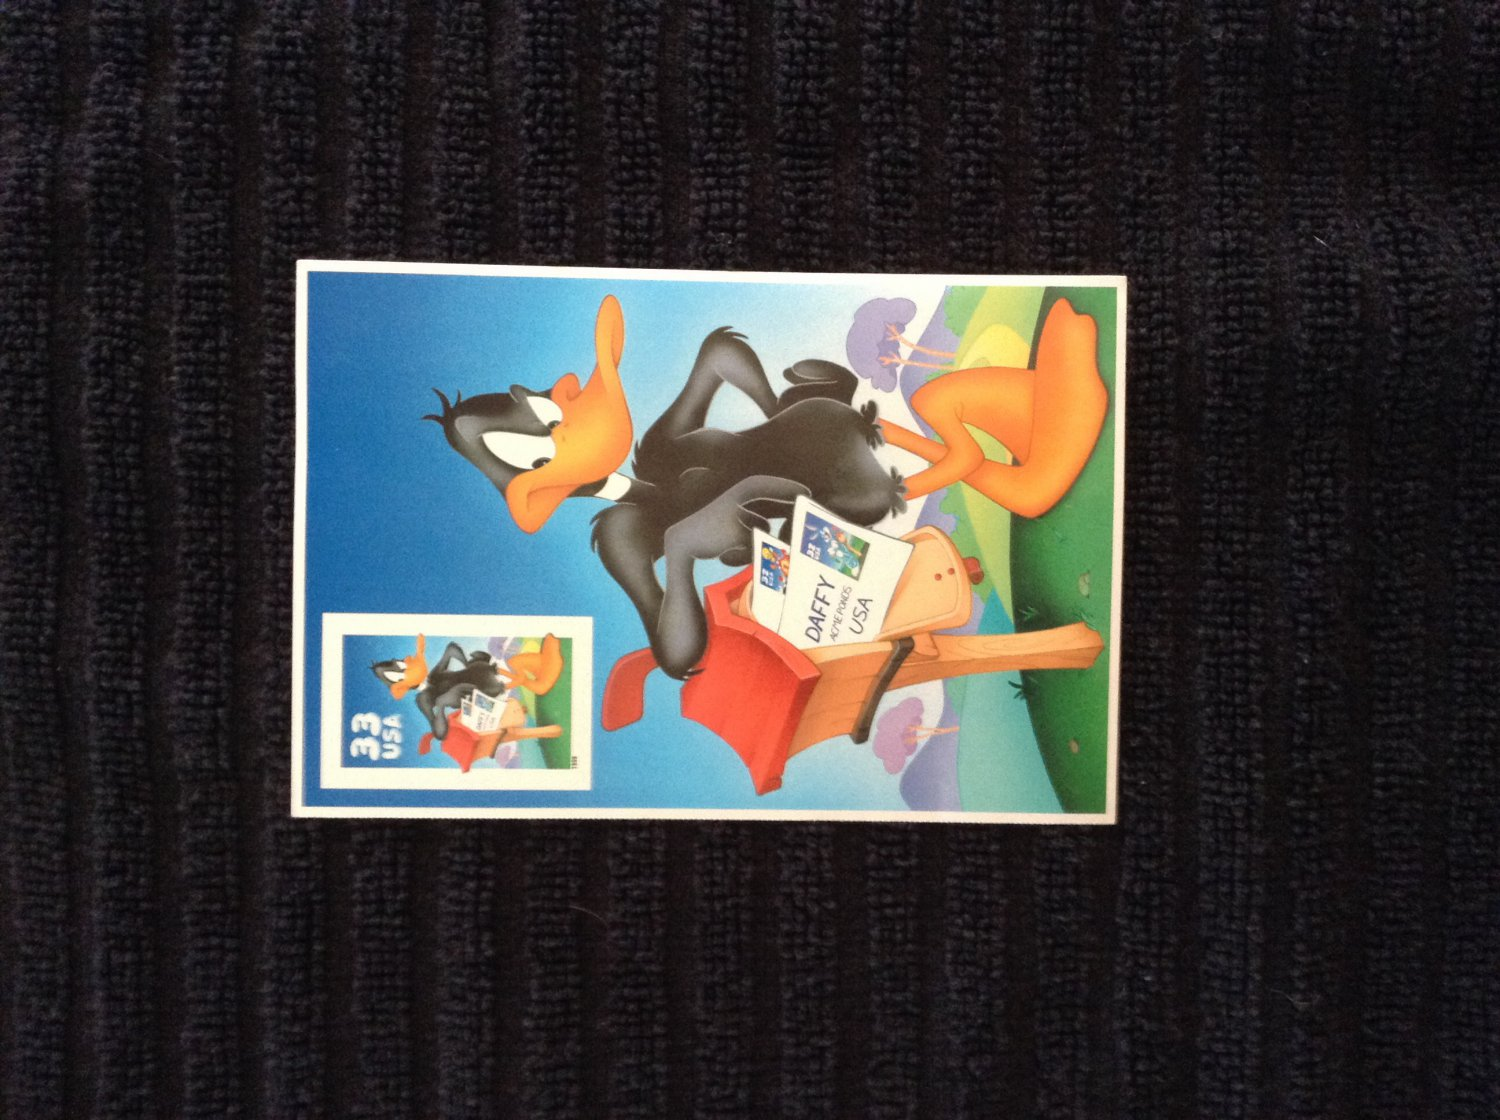 33 Cent Daffy Duck Postage Stamp - Unused